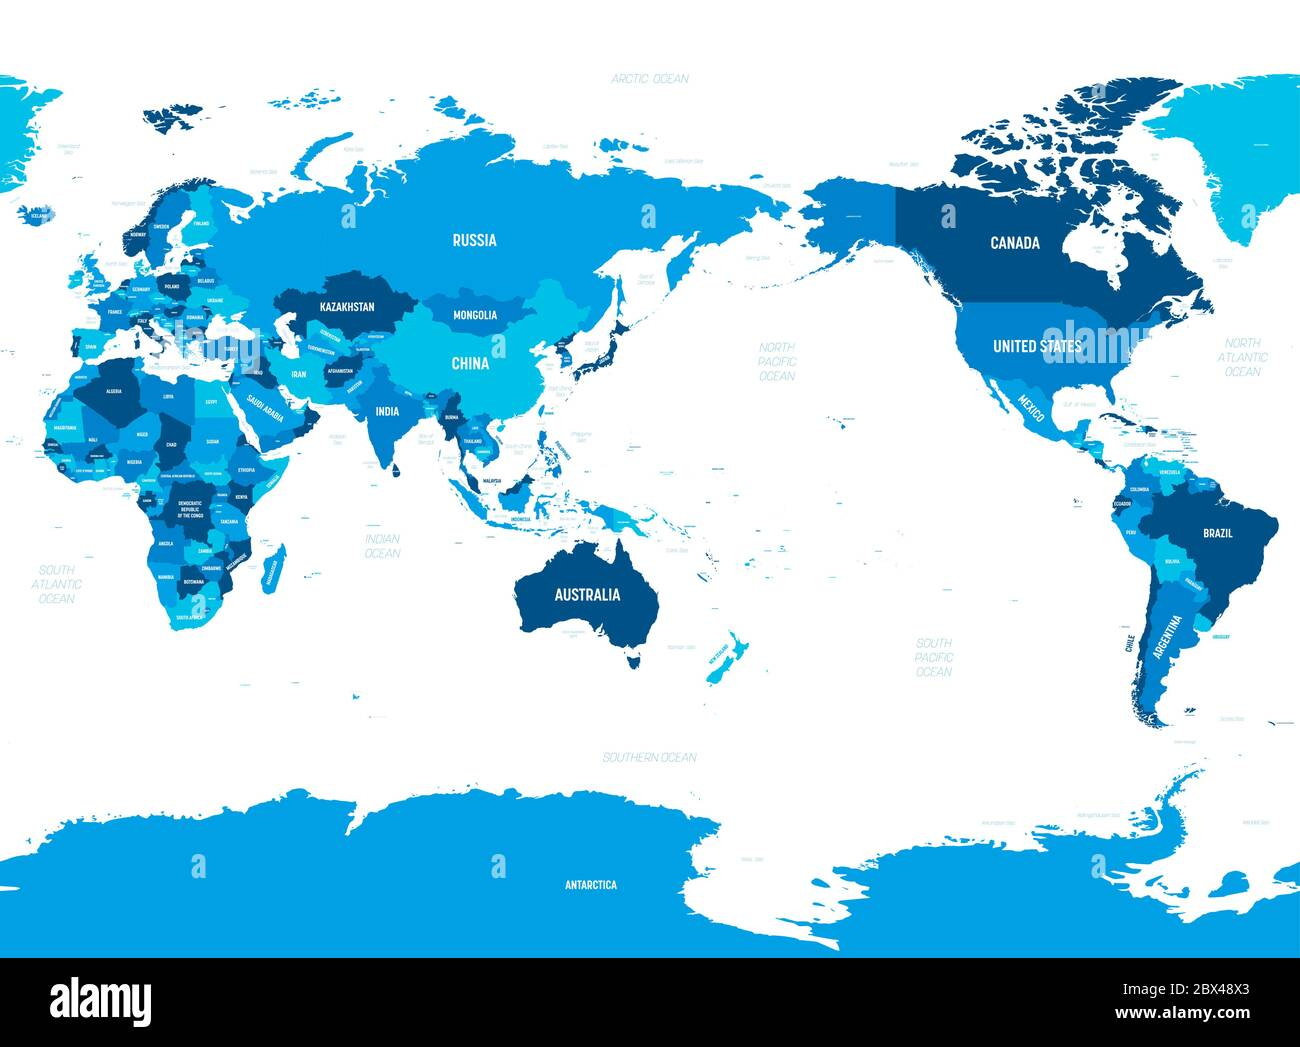 World Map Asia Australia And Pacific Ocean Centered Green Hue Colored On Dark Background High Detailed Political Map Of World With Country Capital Ocean And Sea Names Labeling Stock Vector Image